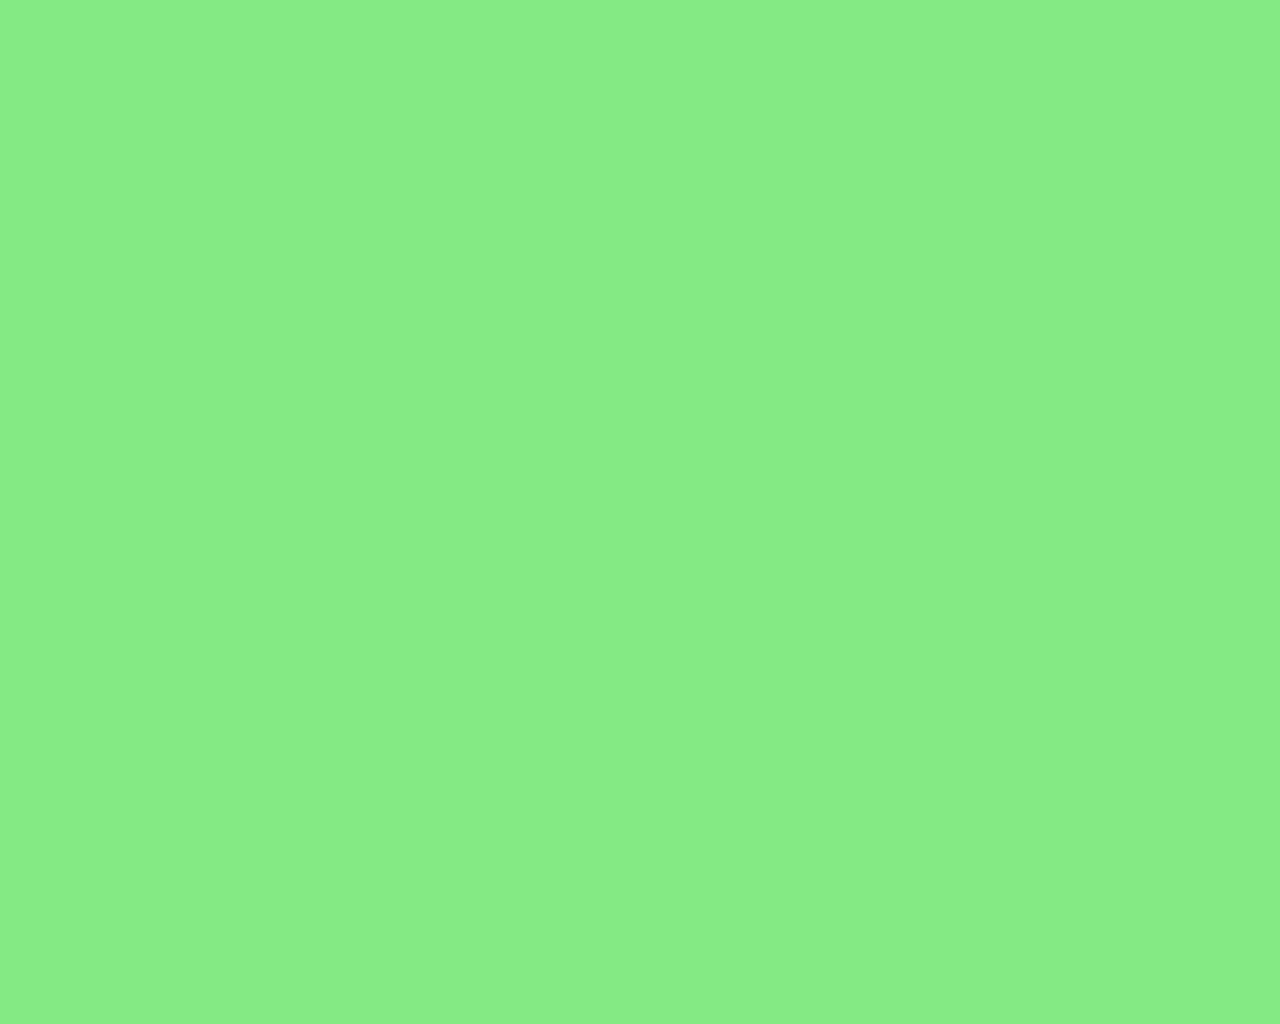 Plain mint green background viewing gallery wallpapers - Plain green background ...